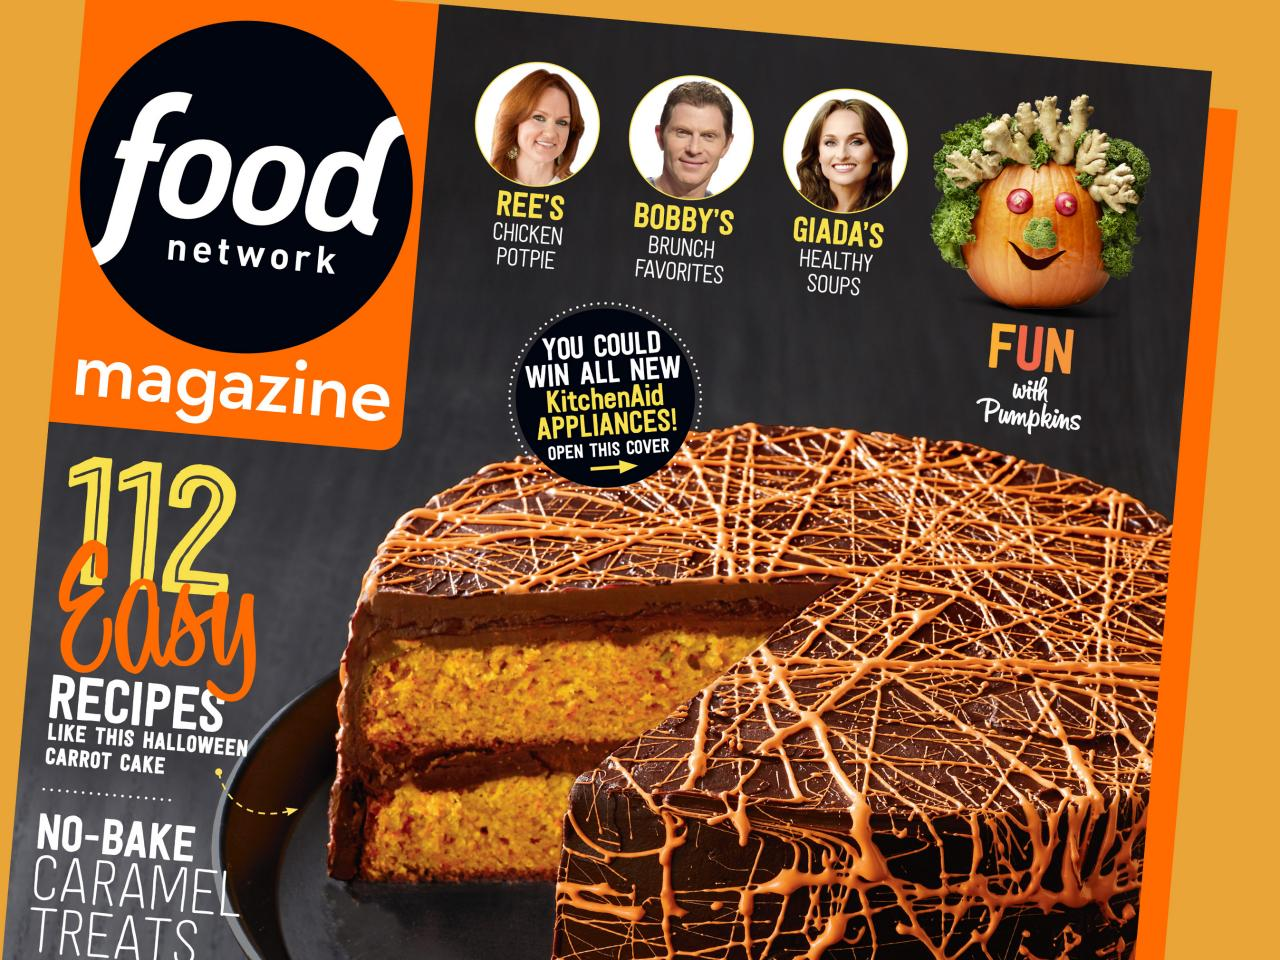 Food network magazine october 2015 recipe index food for October recipes